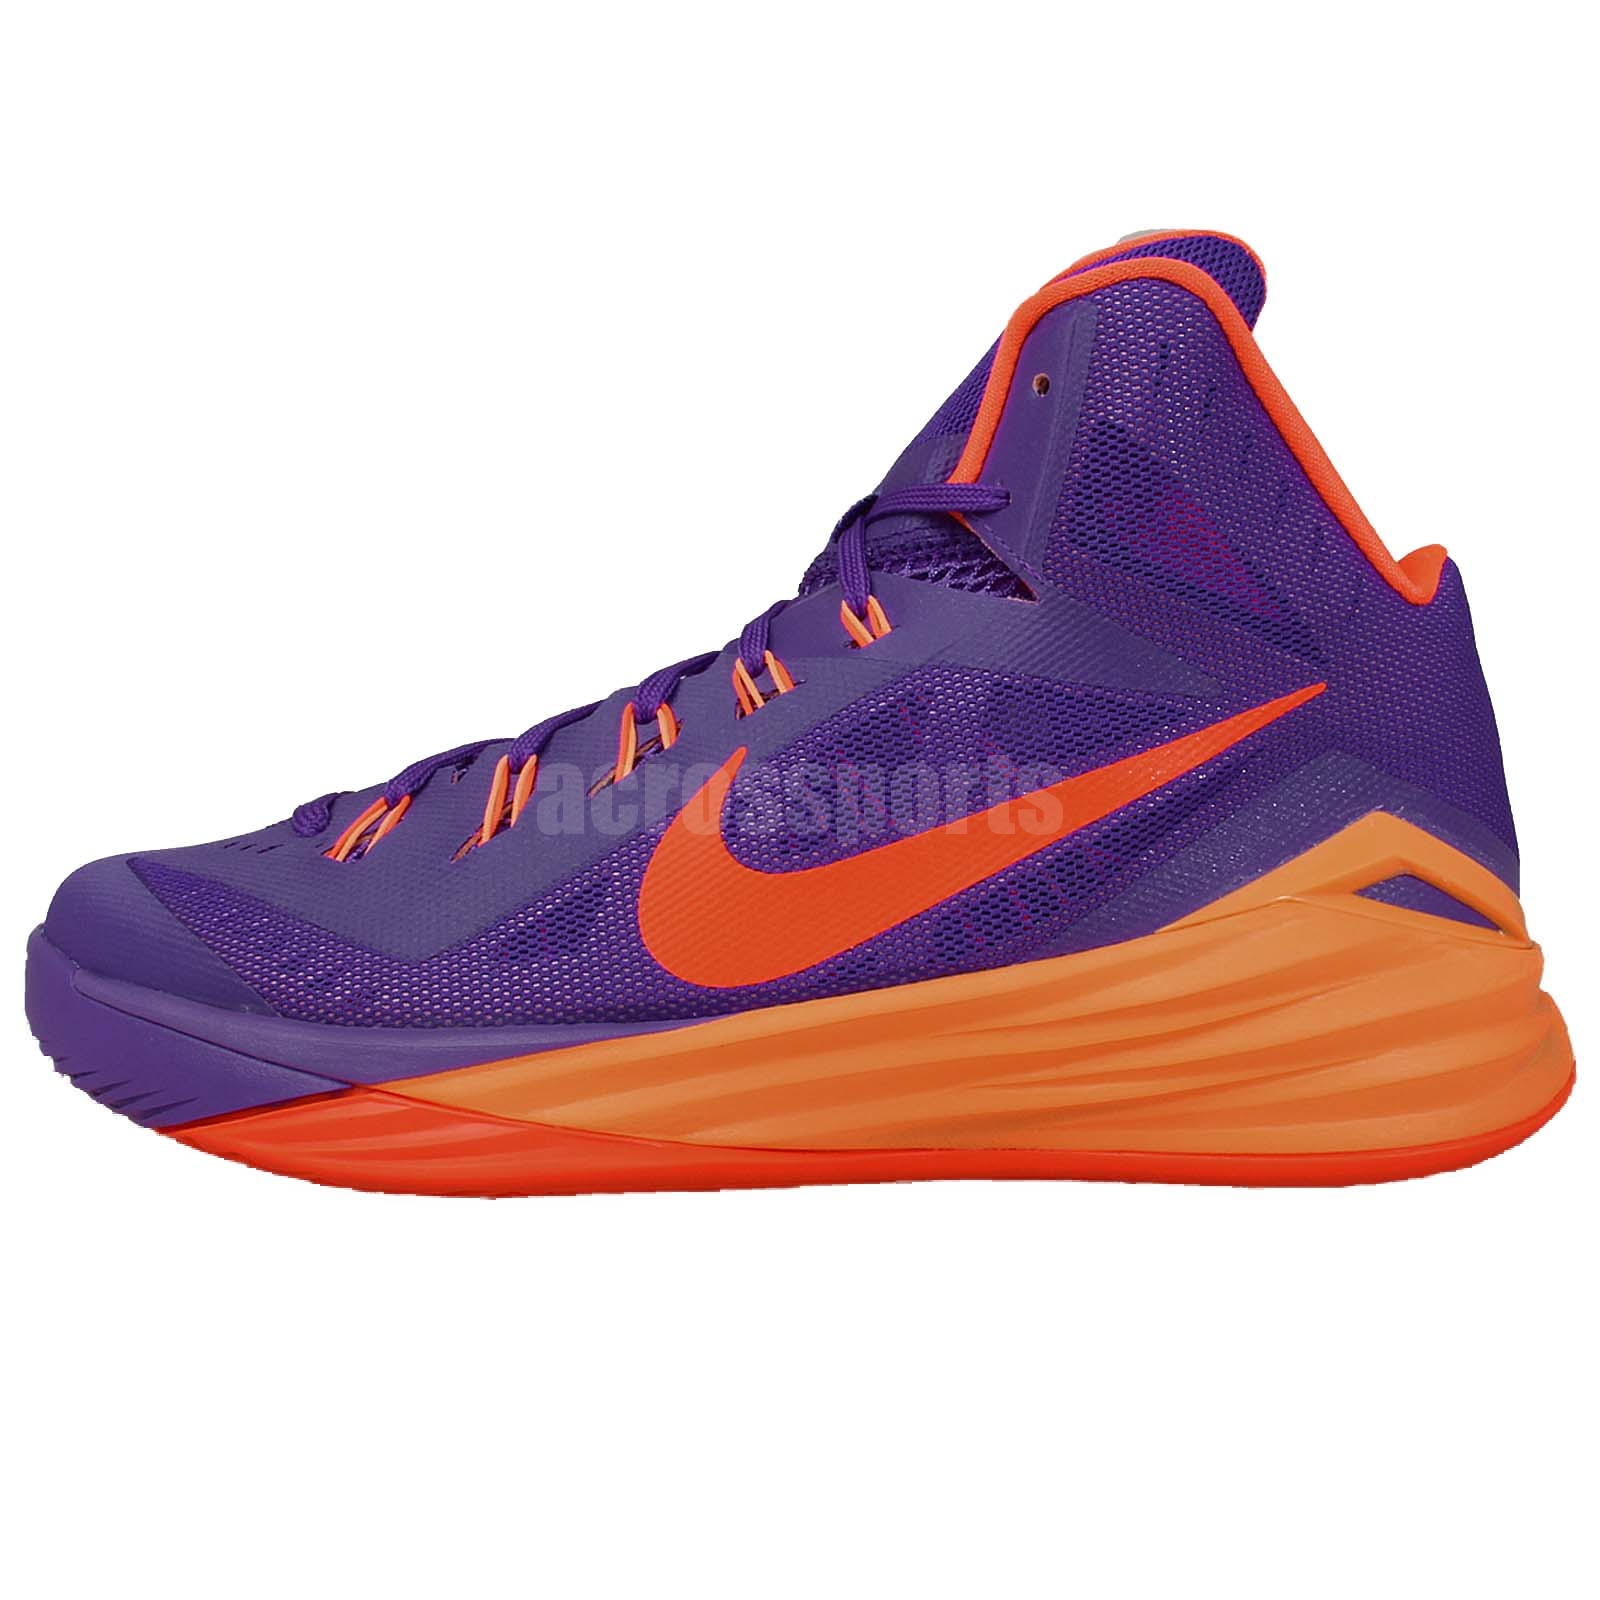 nike hyperdunk 2014 purple orange 2014 mens basketball